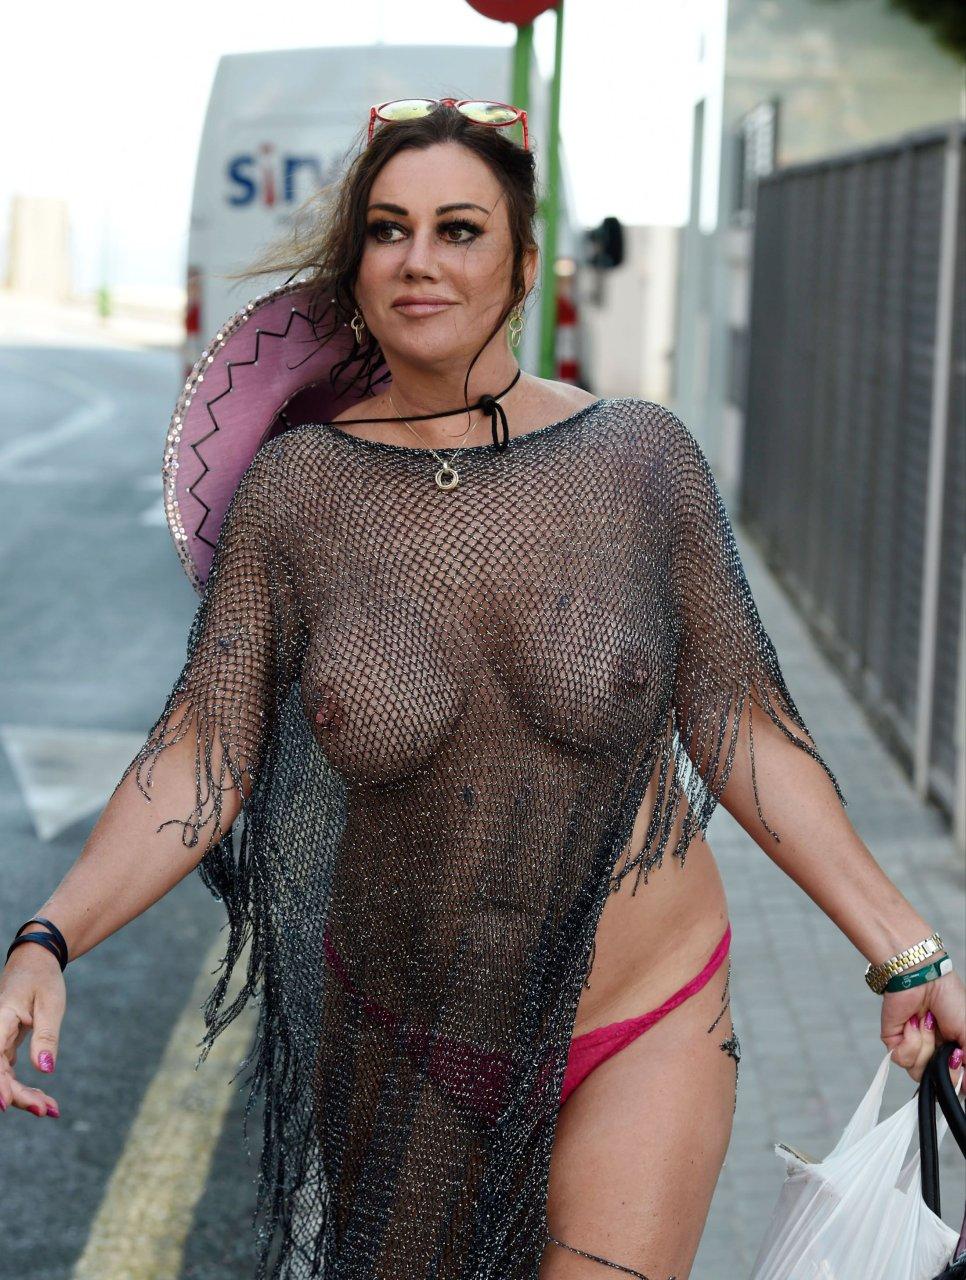 Lisa Appleton See Through Photos Thefappening